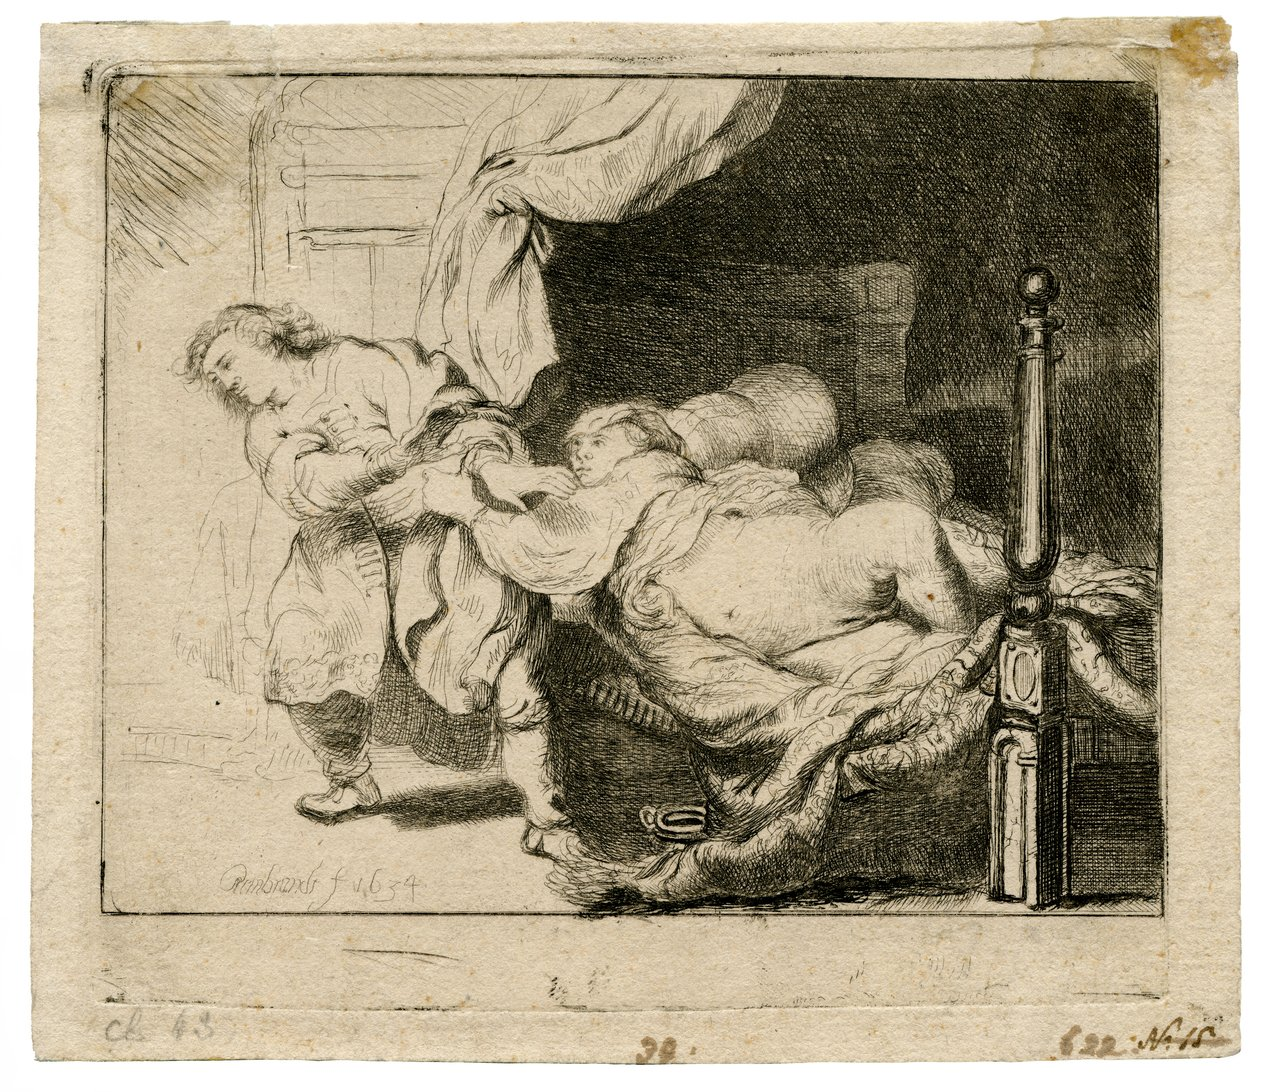 An Antique Etching Rembrandt Harmensz. van Rijn (1606-1669) Joseph and Potiphar's Wife 1634